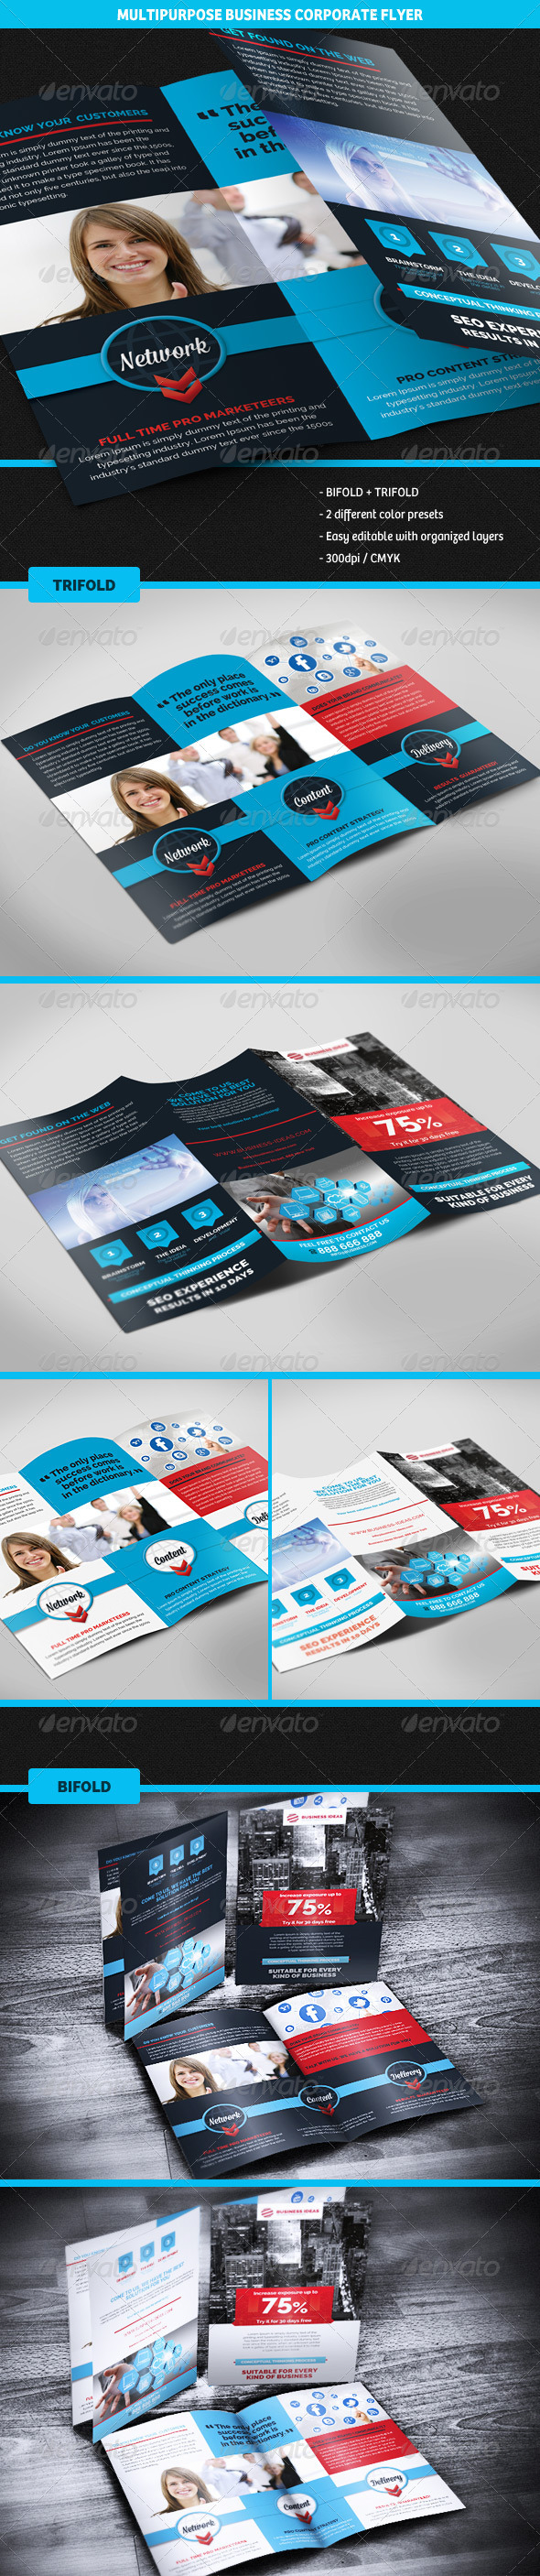 GraphicRiver Corporate Business Bifold & Trifold Brochure 5046544